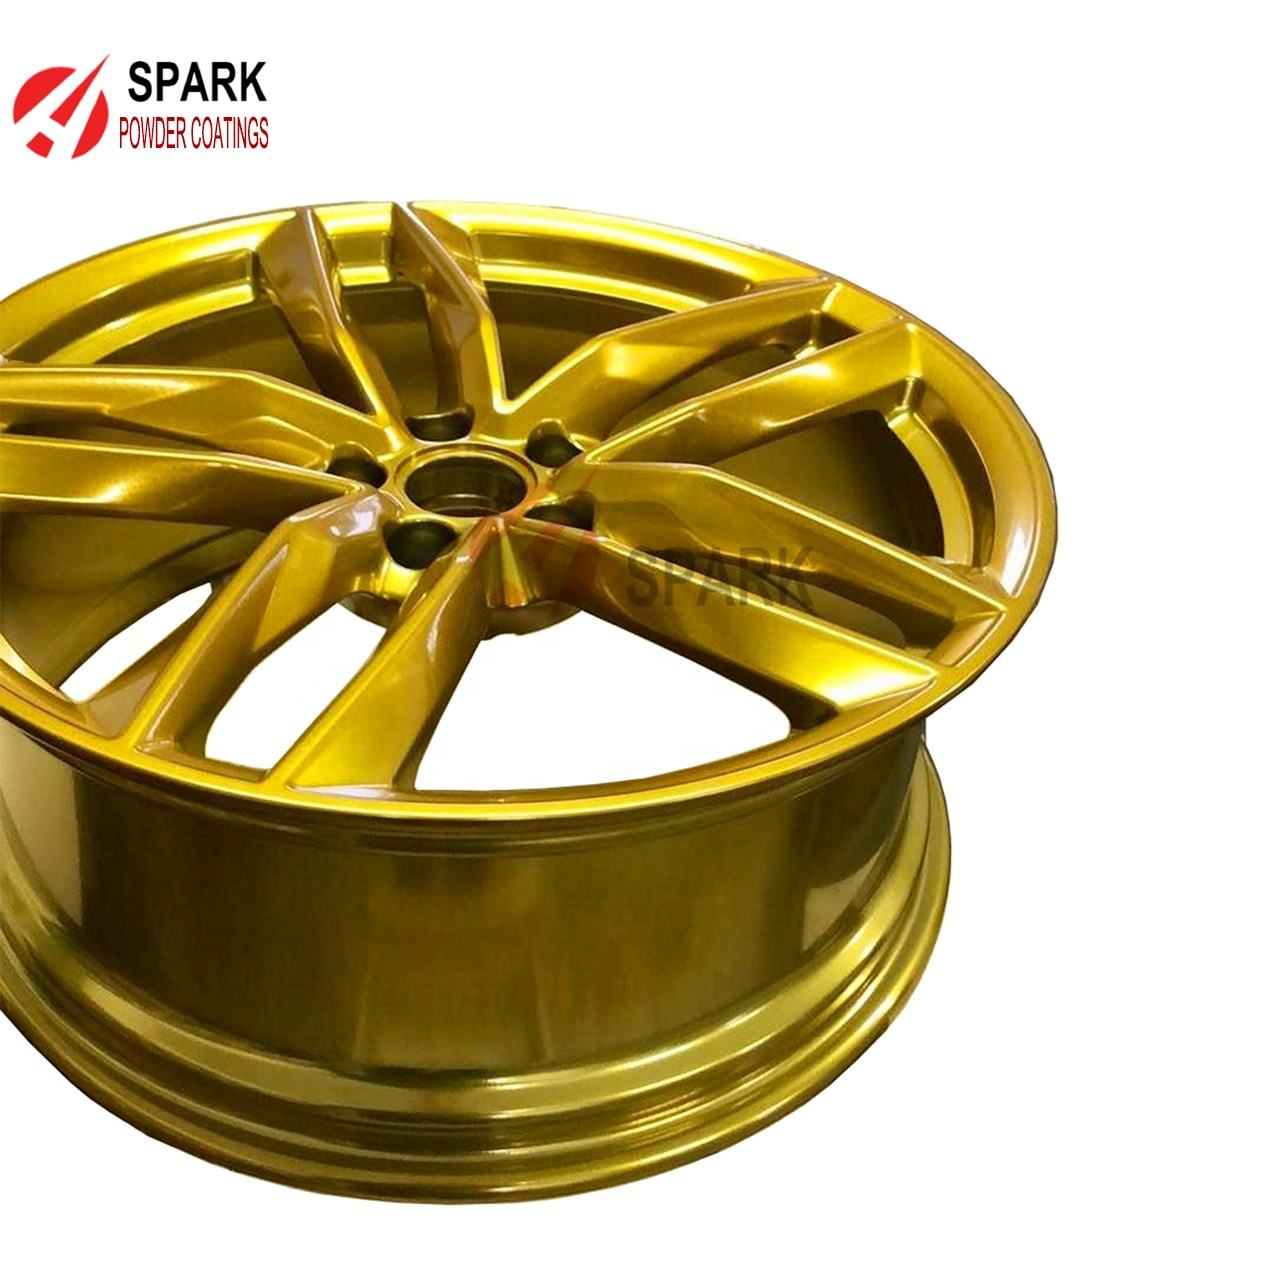 Gold Chrome Powder coatings